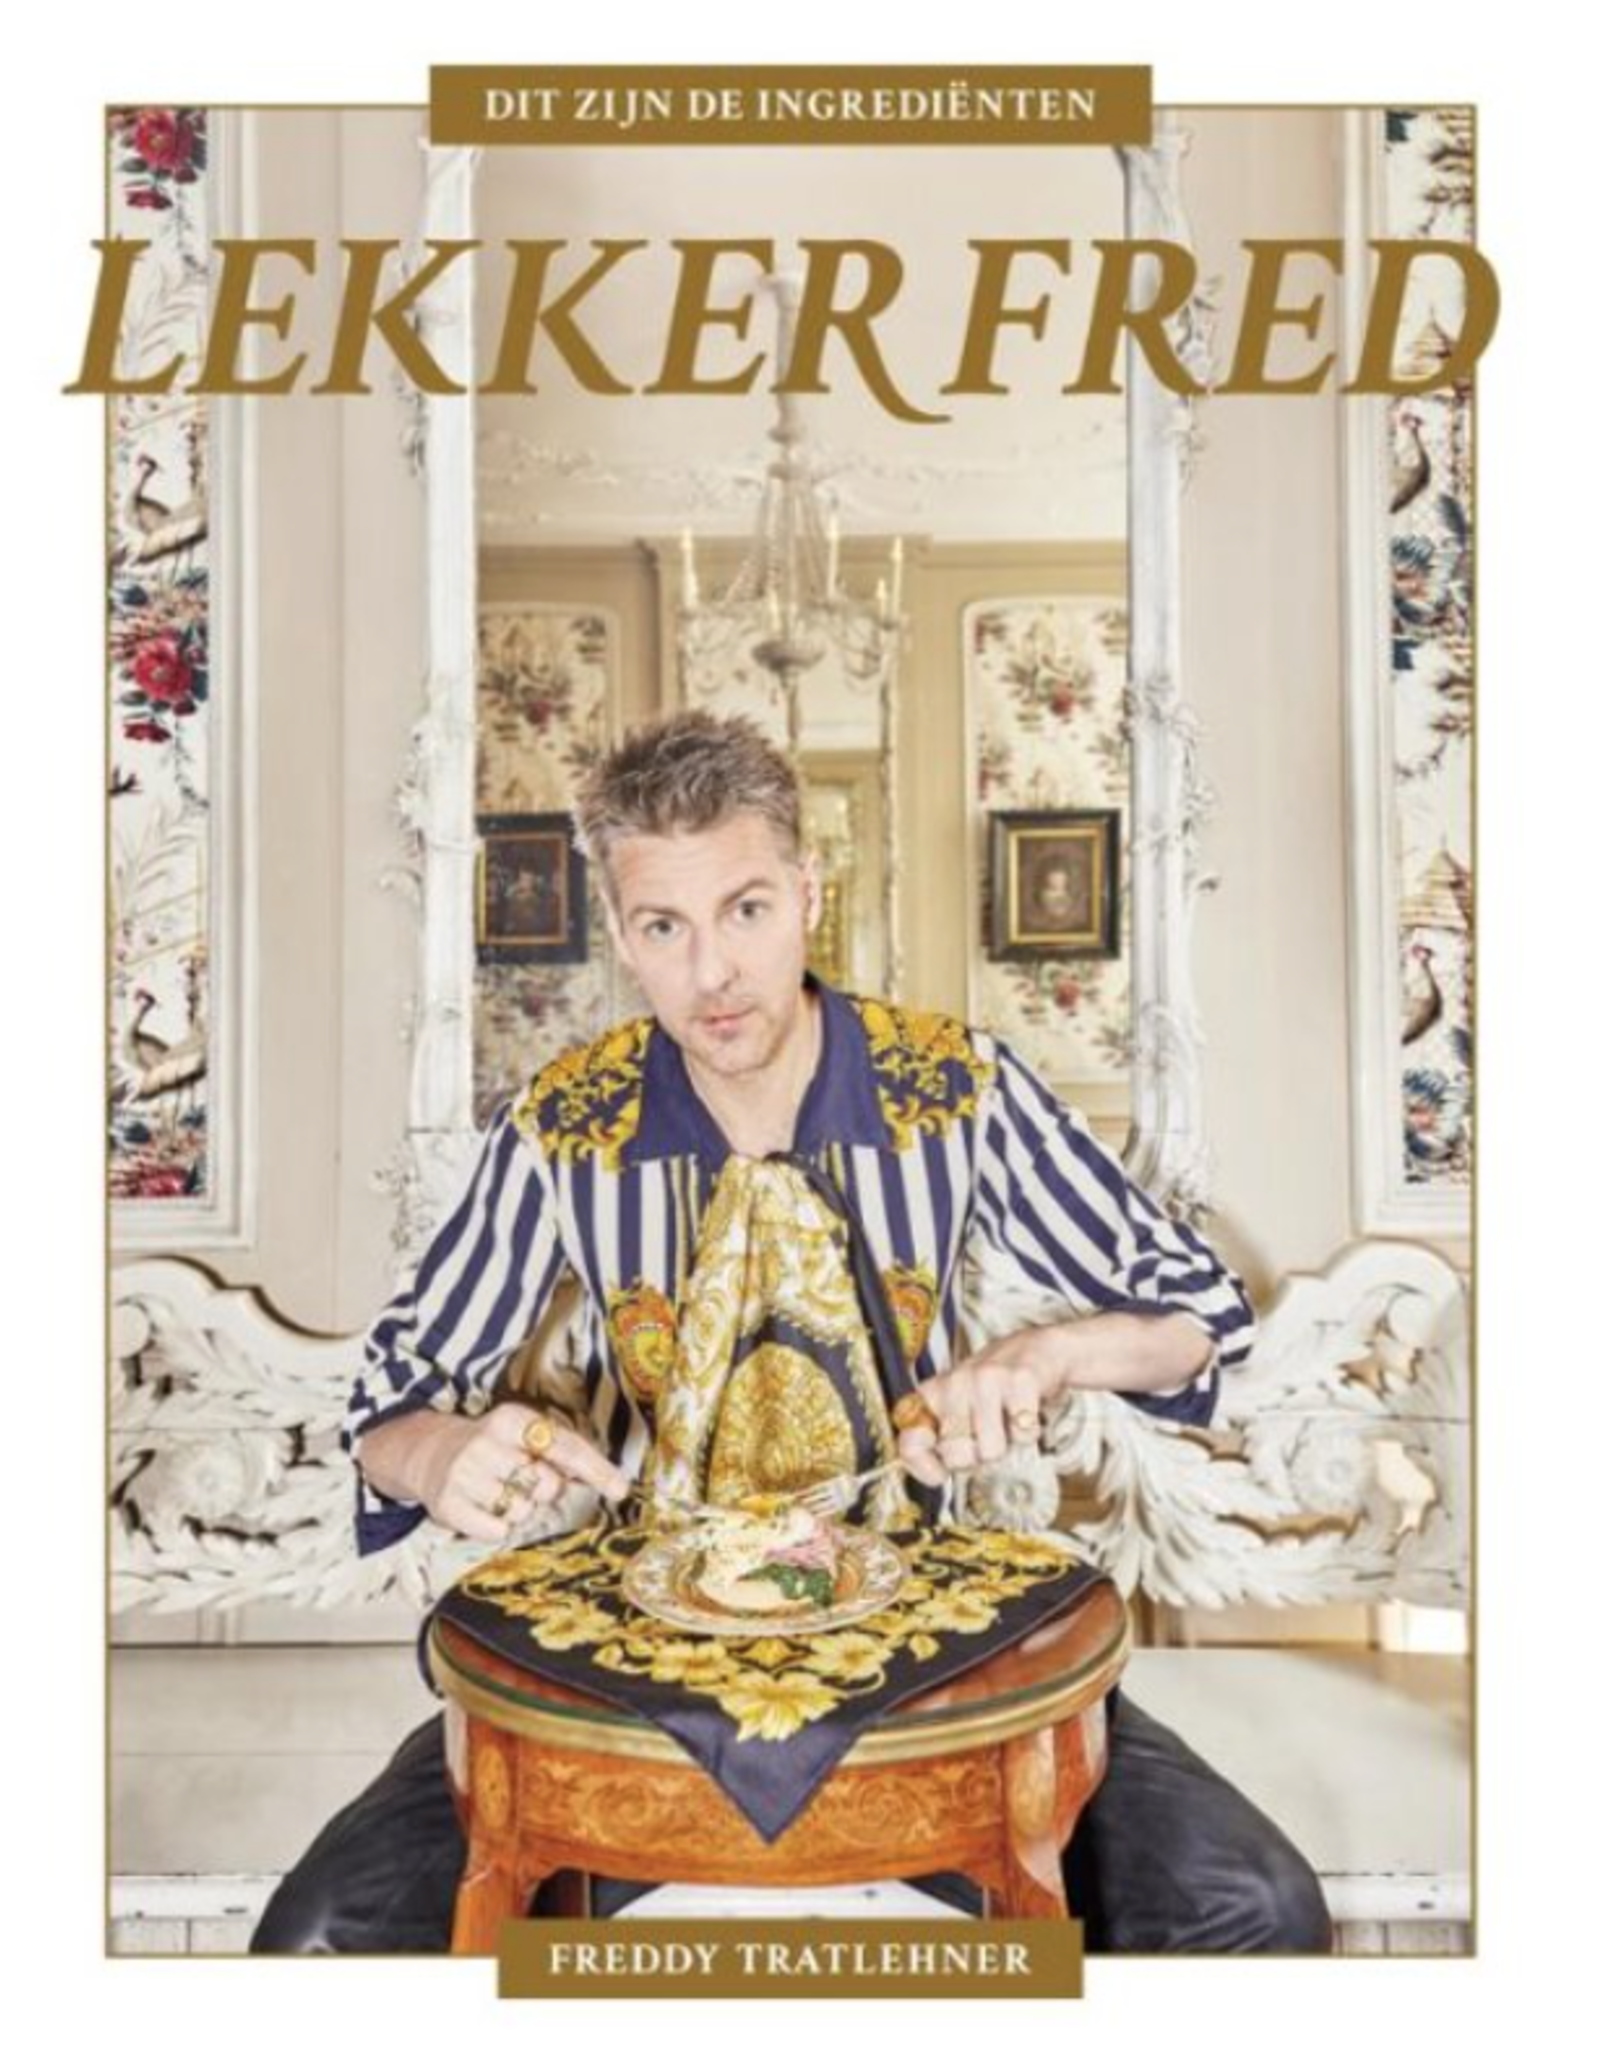 Kitchen Trend Lekker Fred| Freddy Tratlehner